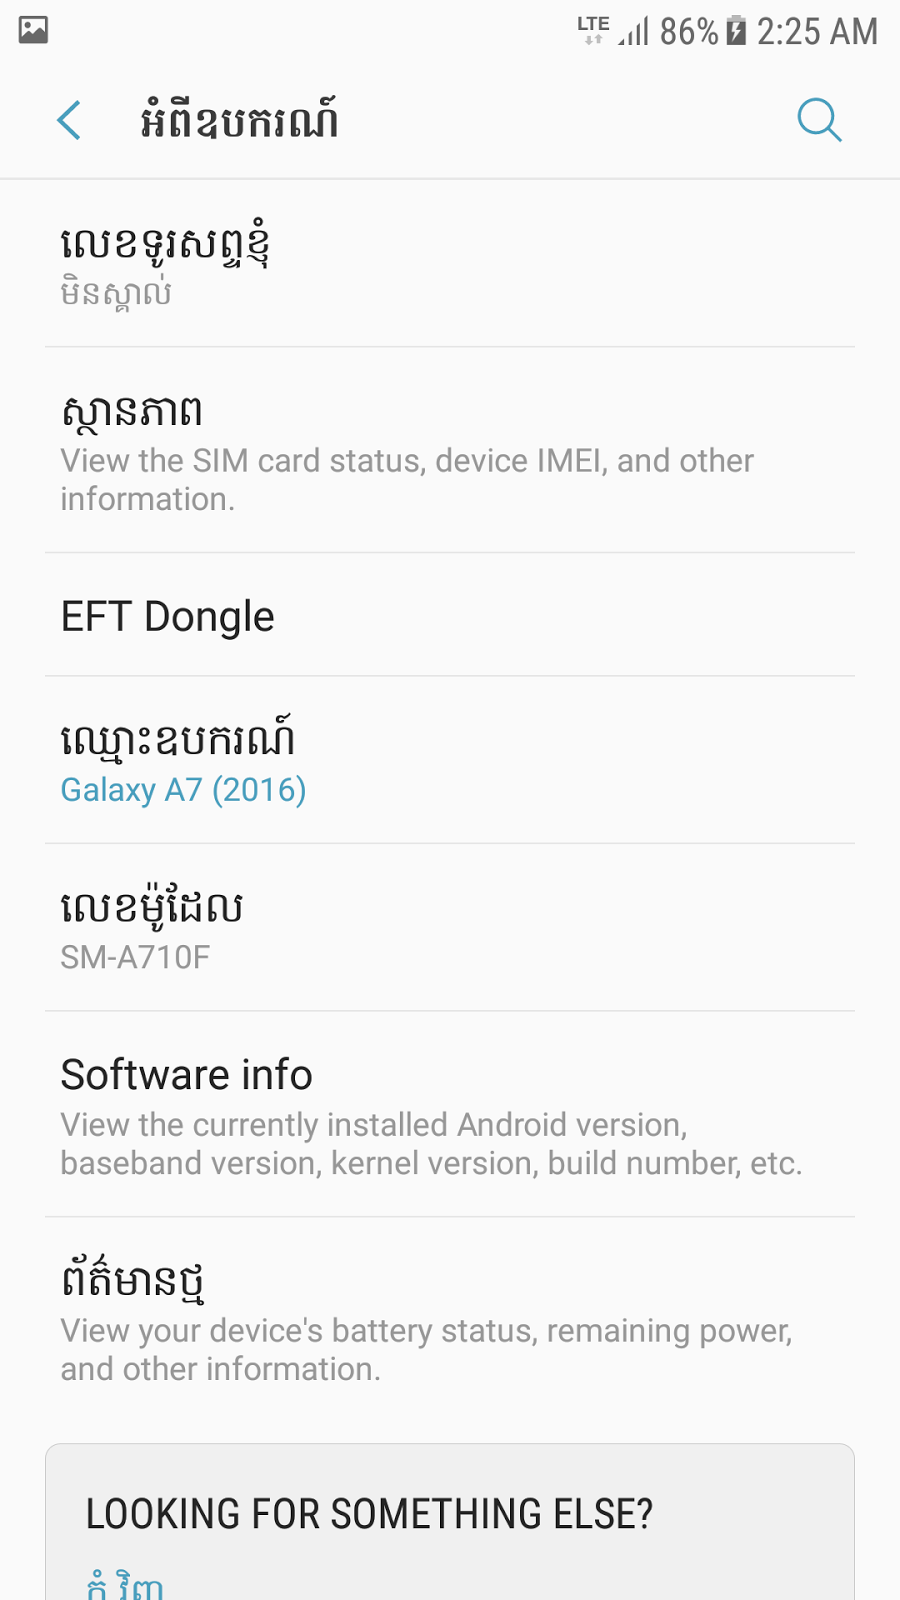 SELL* GALAXY A7 SM-A710K V7 0 Fix Stock Rom without Root